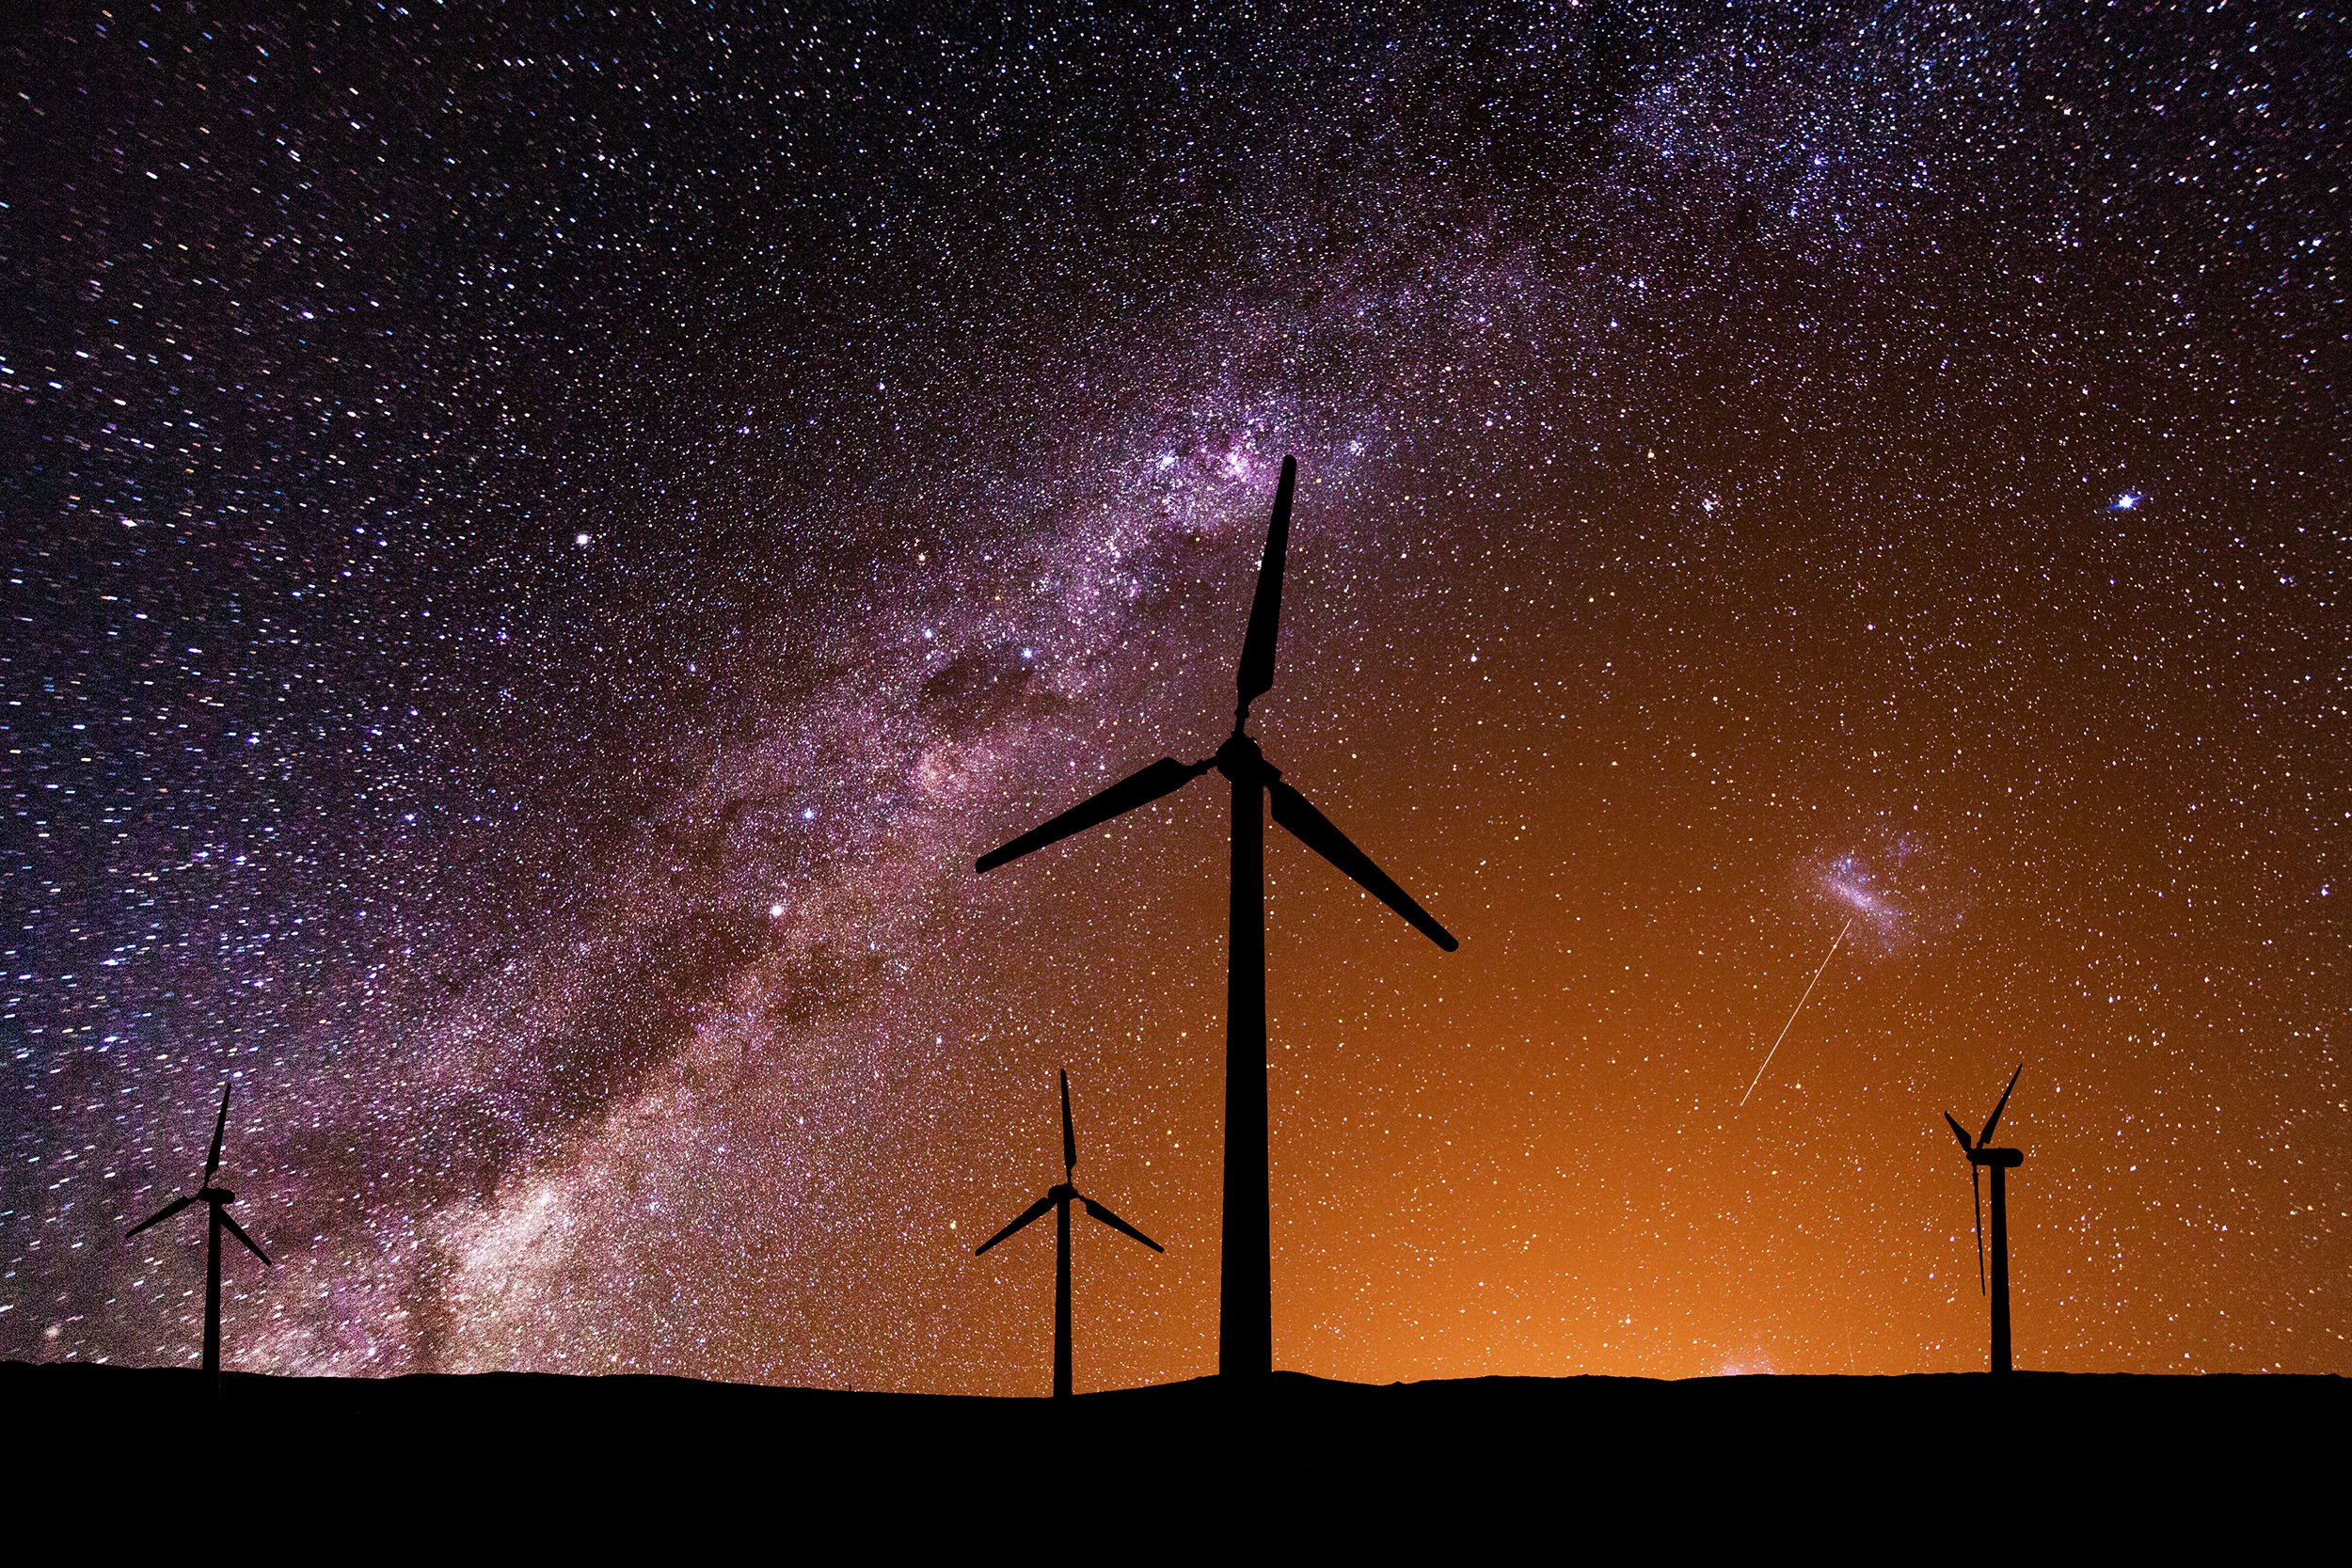 Wind turbines at night under the Milky Way